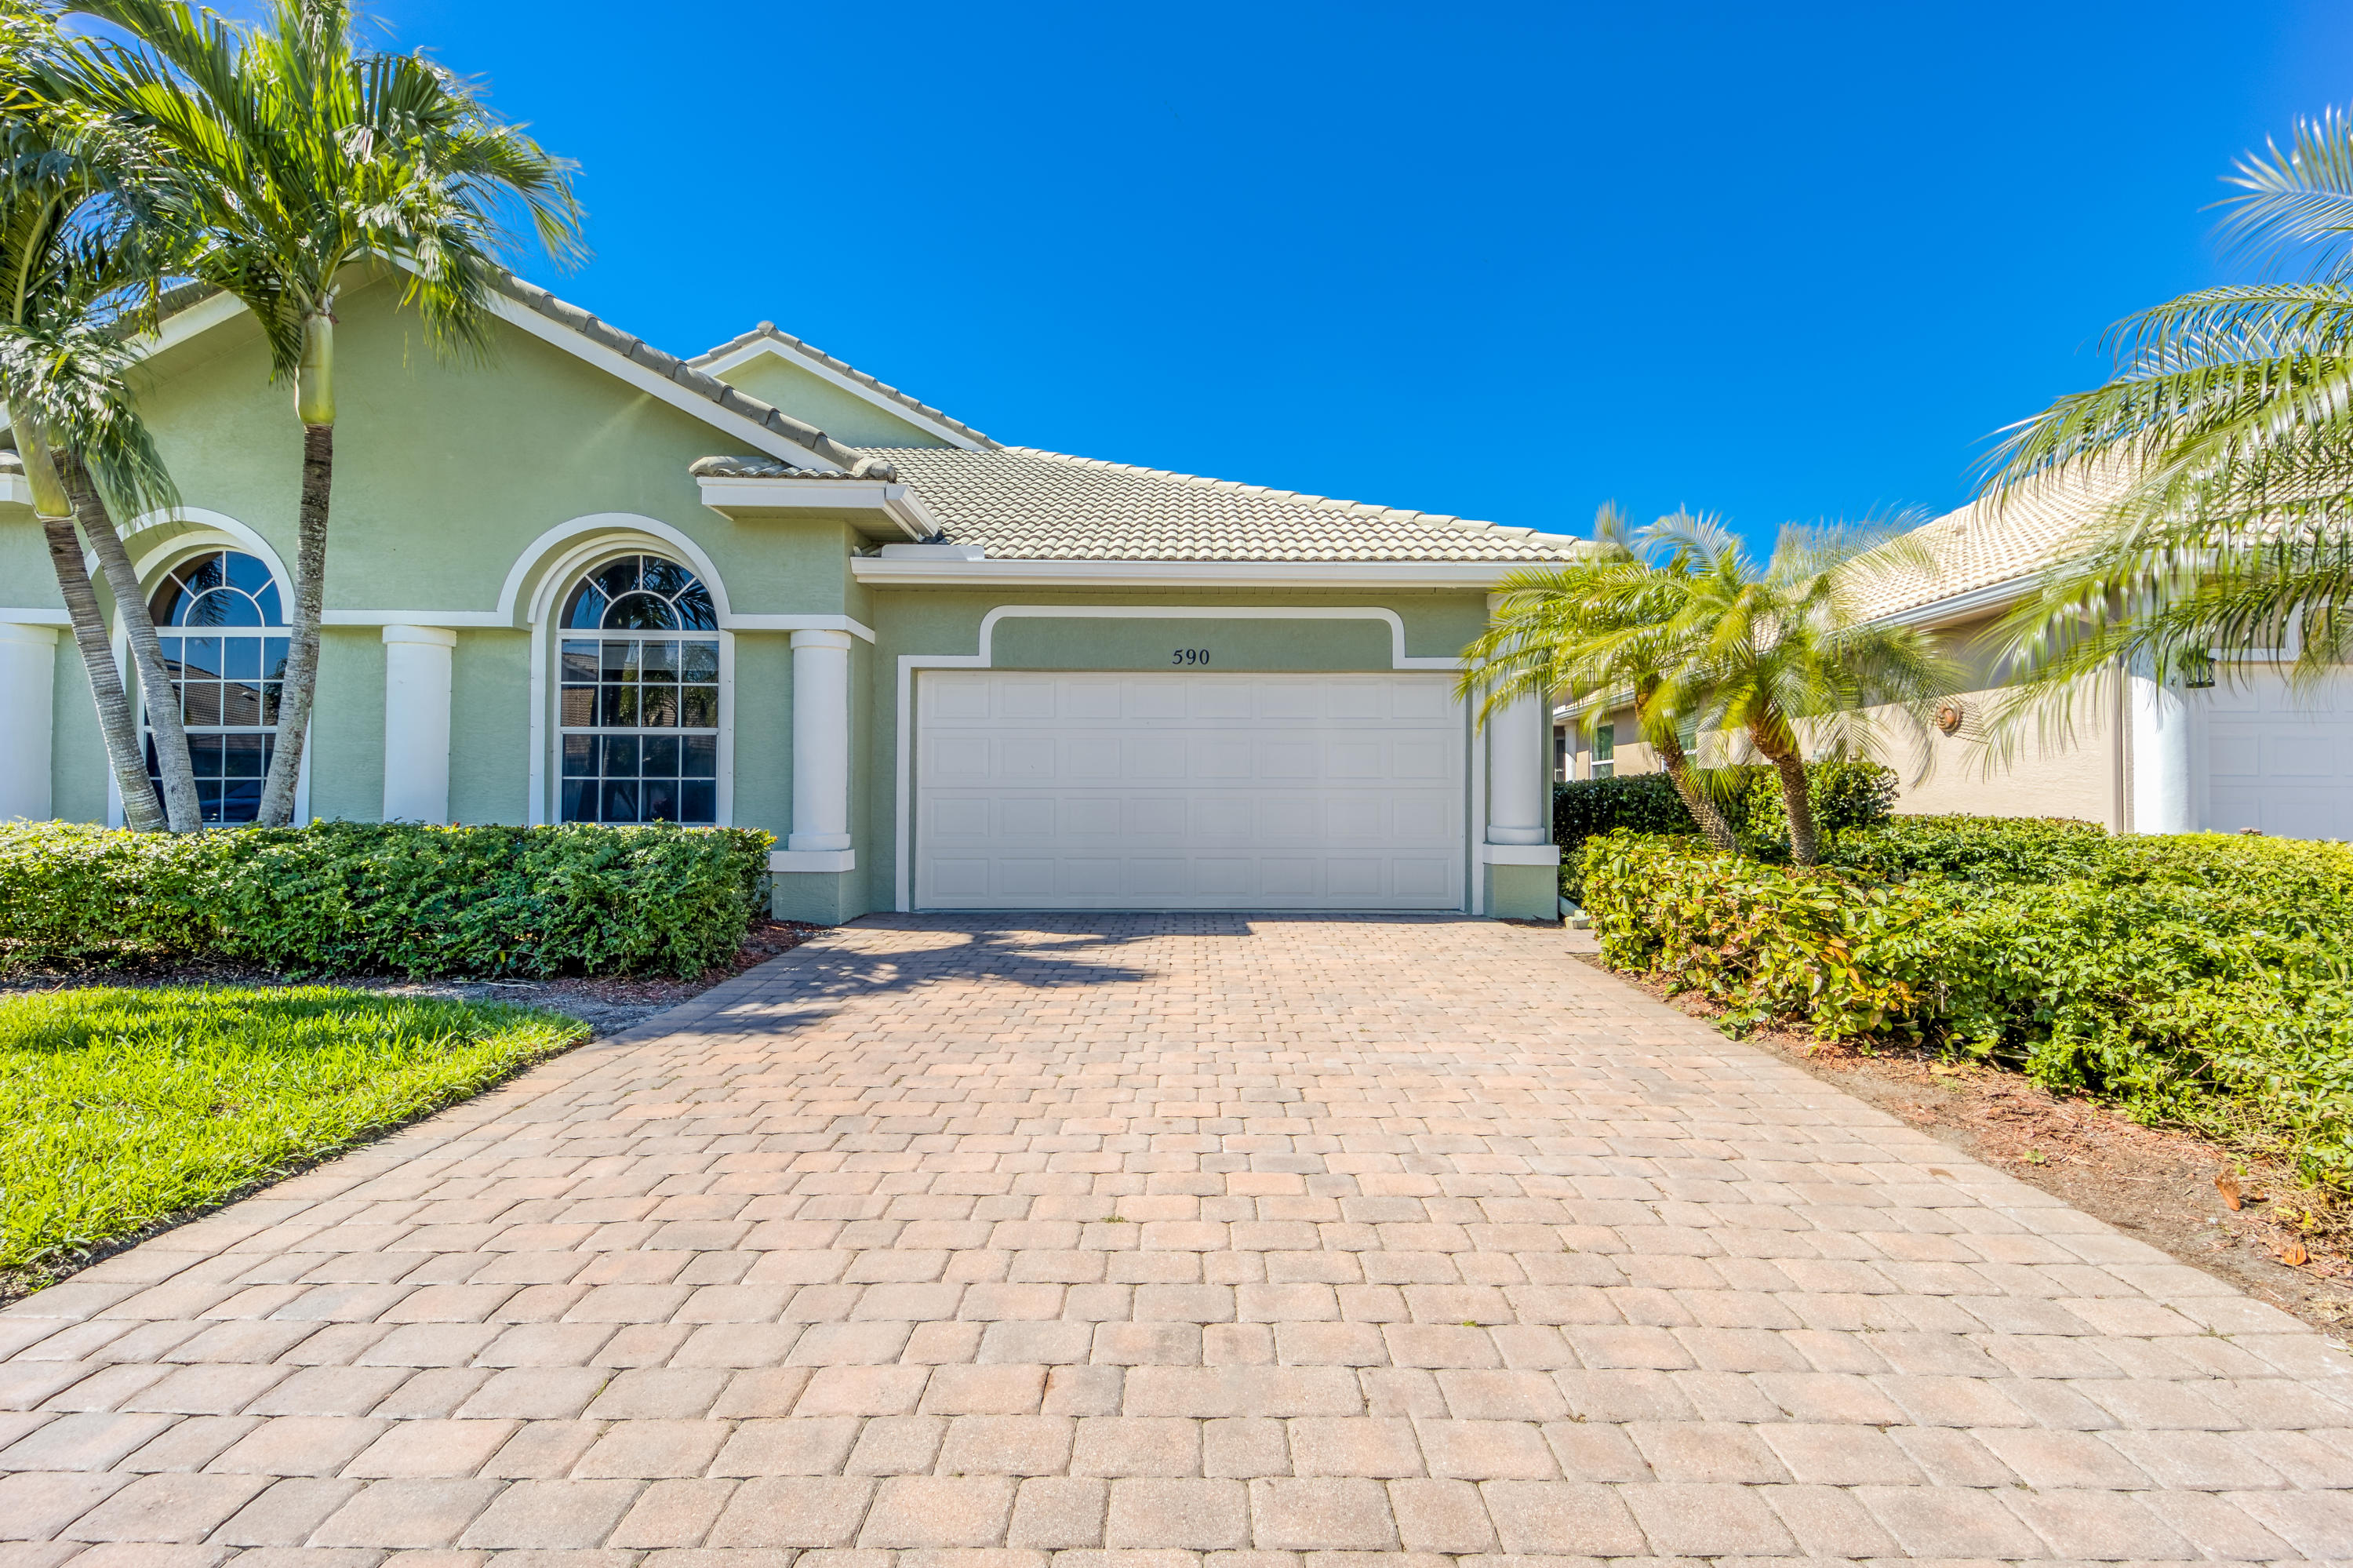 Home for sale in Jensen Beach Country Club Jensen Beach Florida